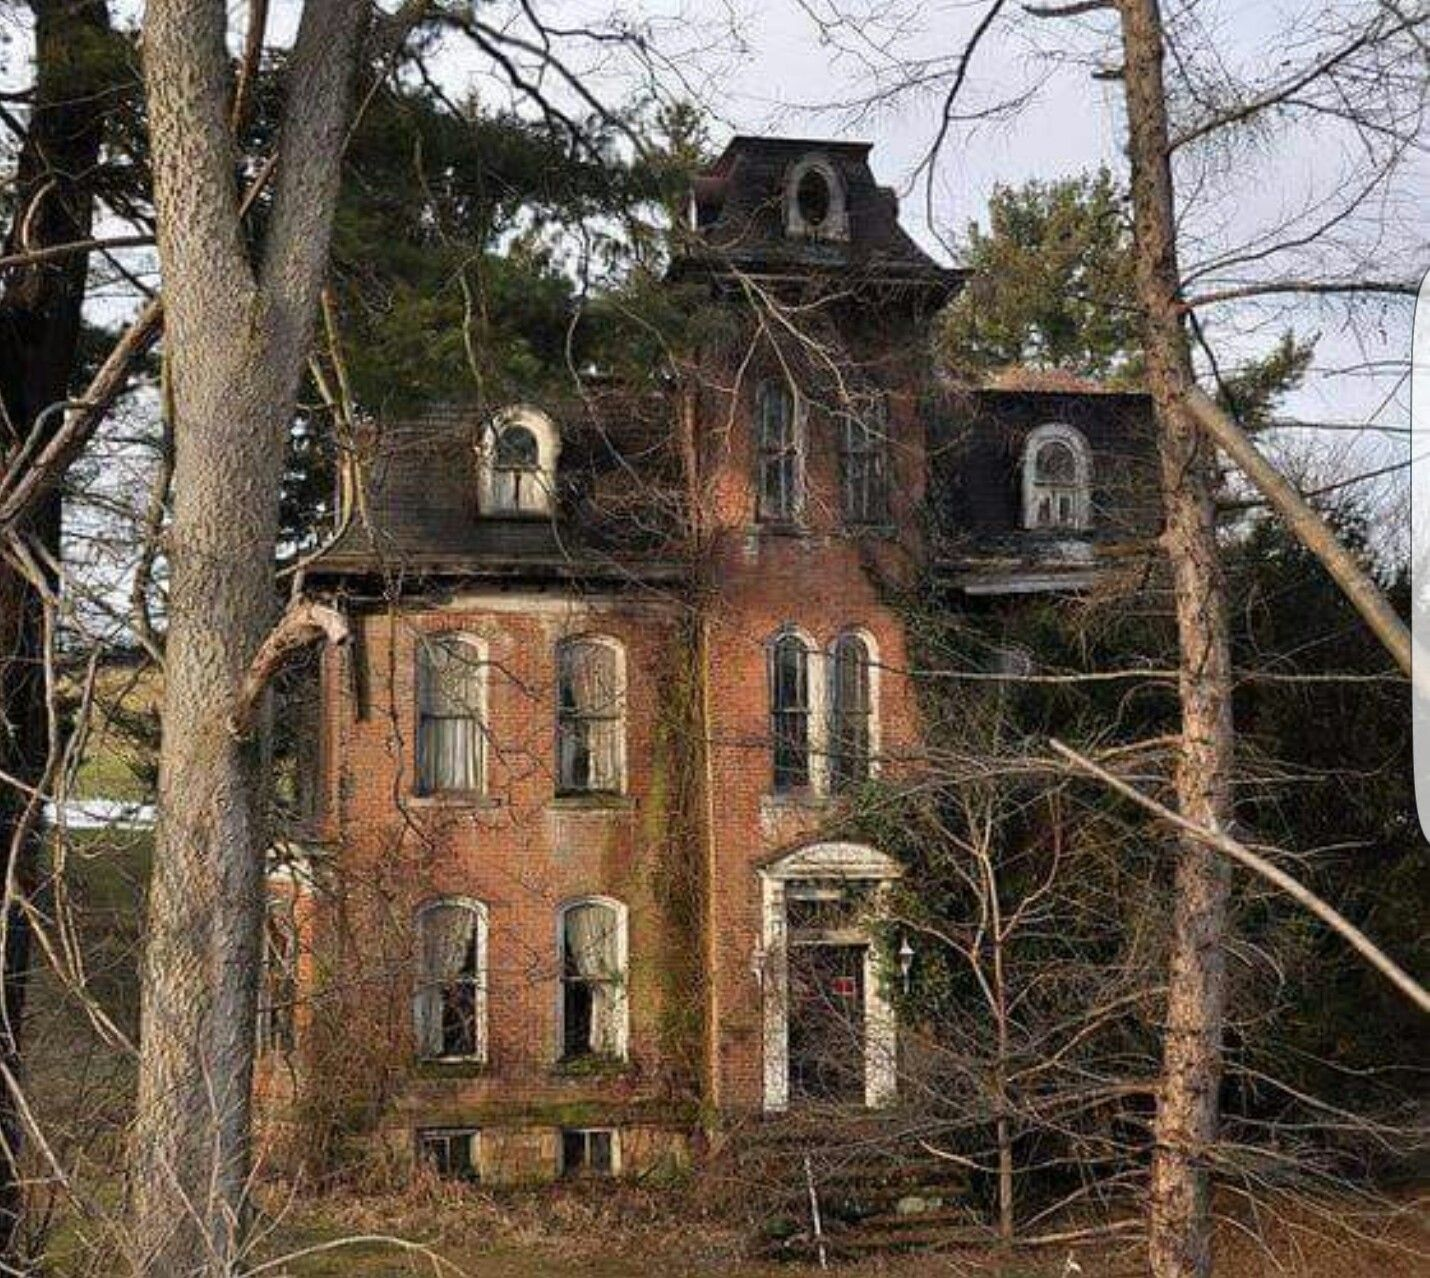 Pin By Debbie Smith On Old Houses